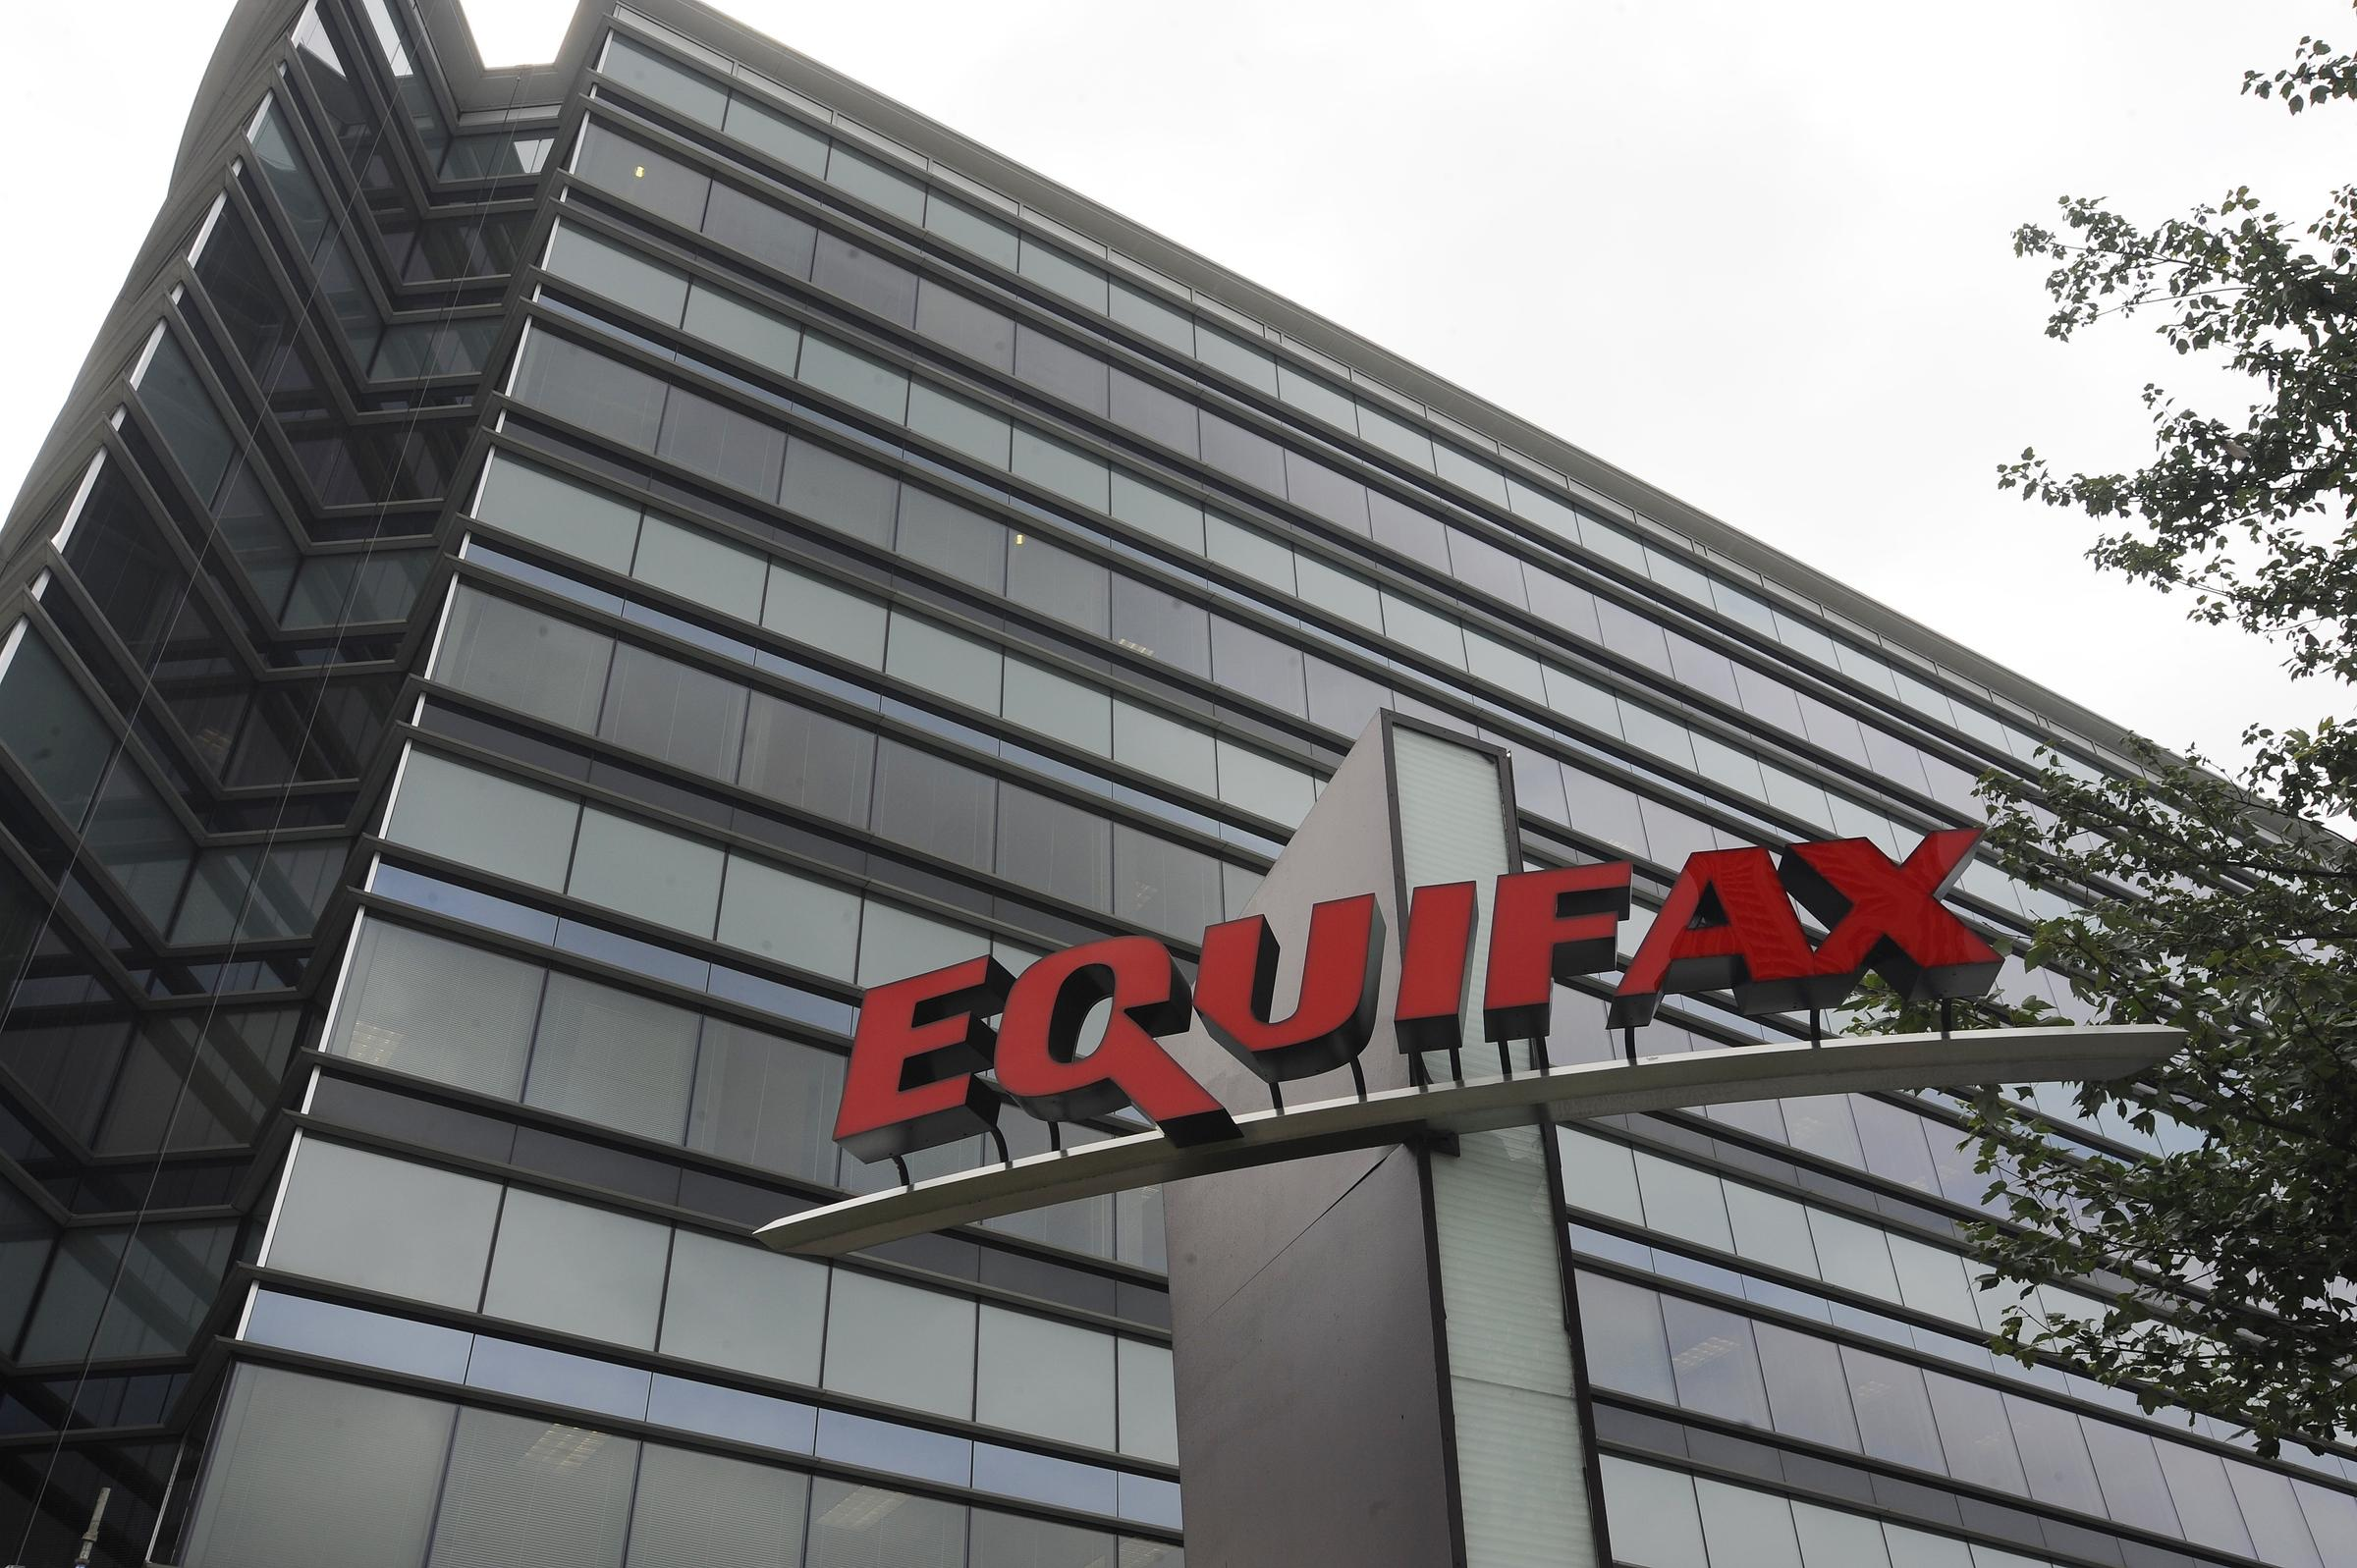 Two Equifax executives will retire following massive data breach